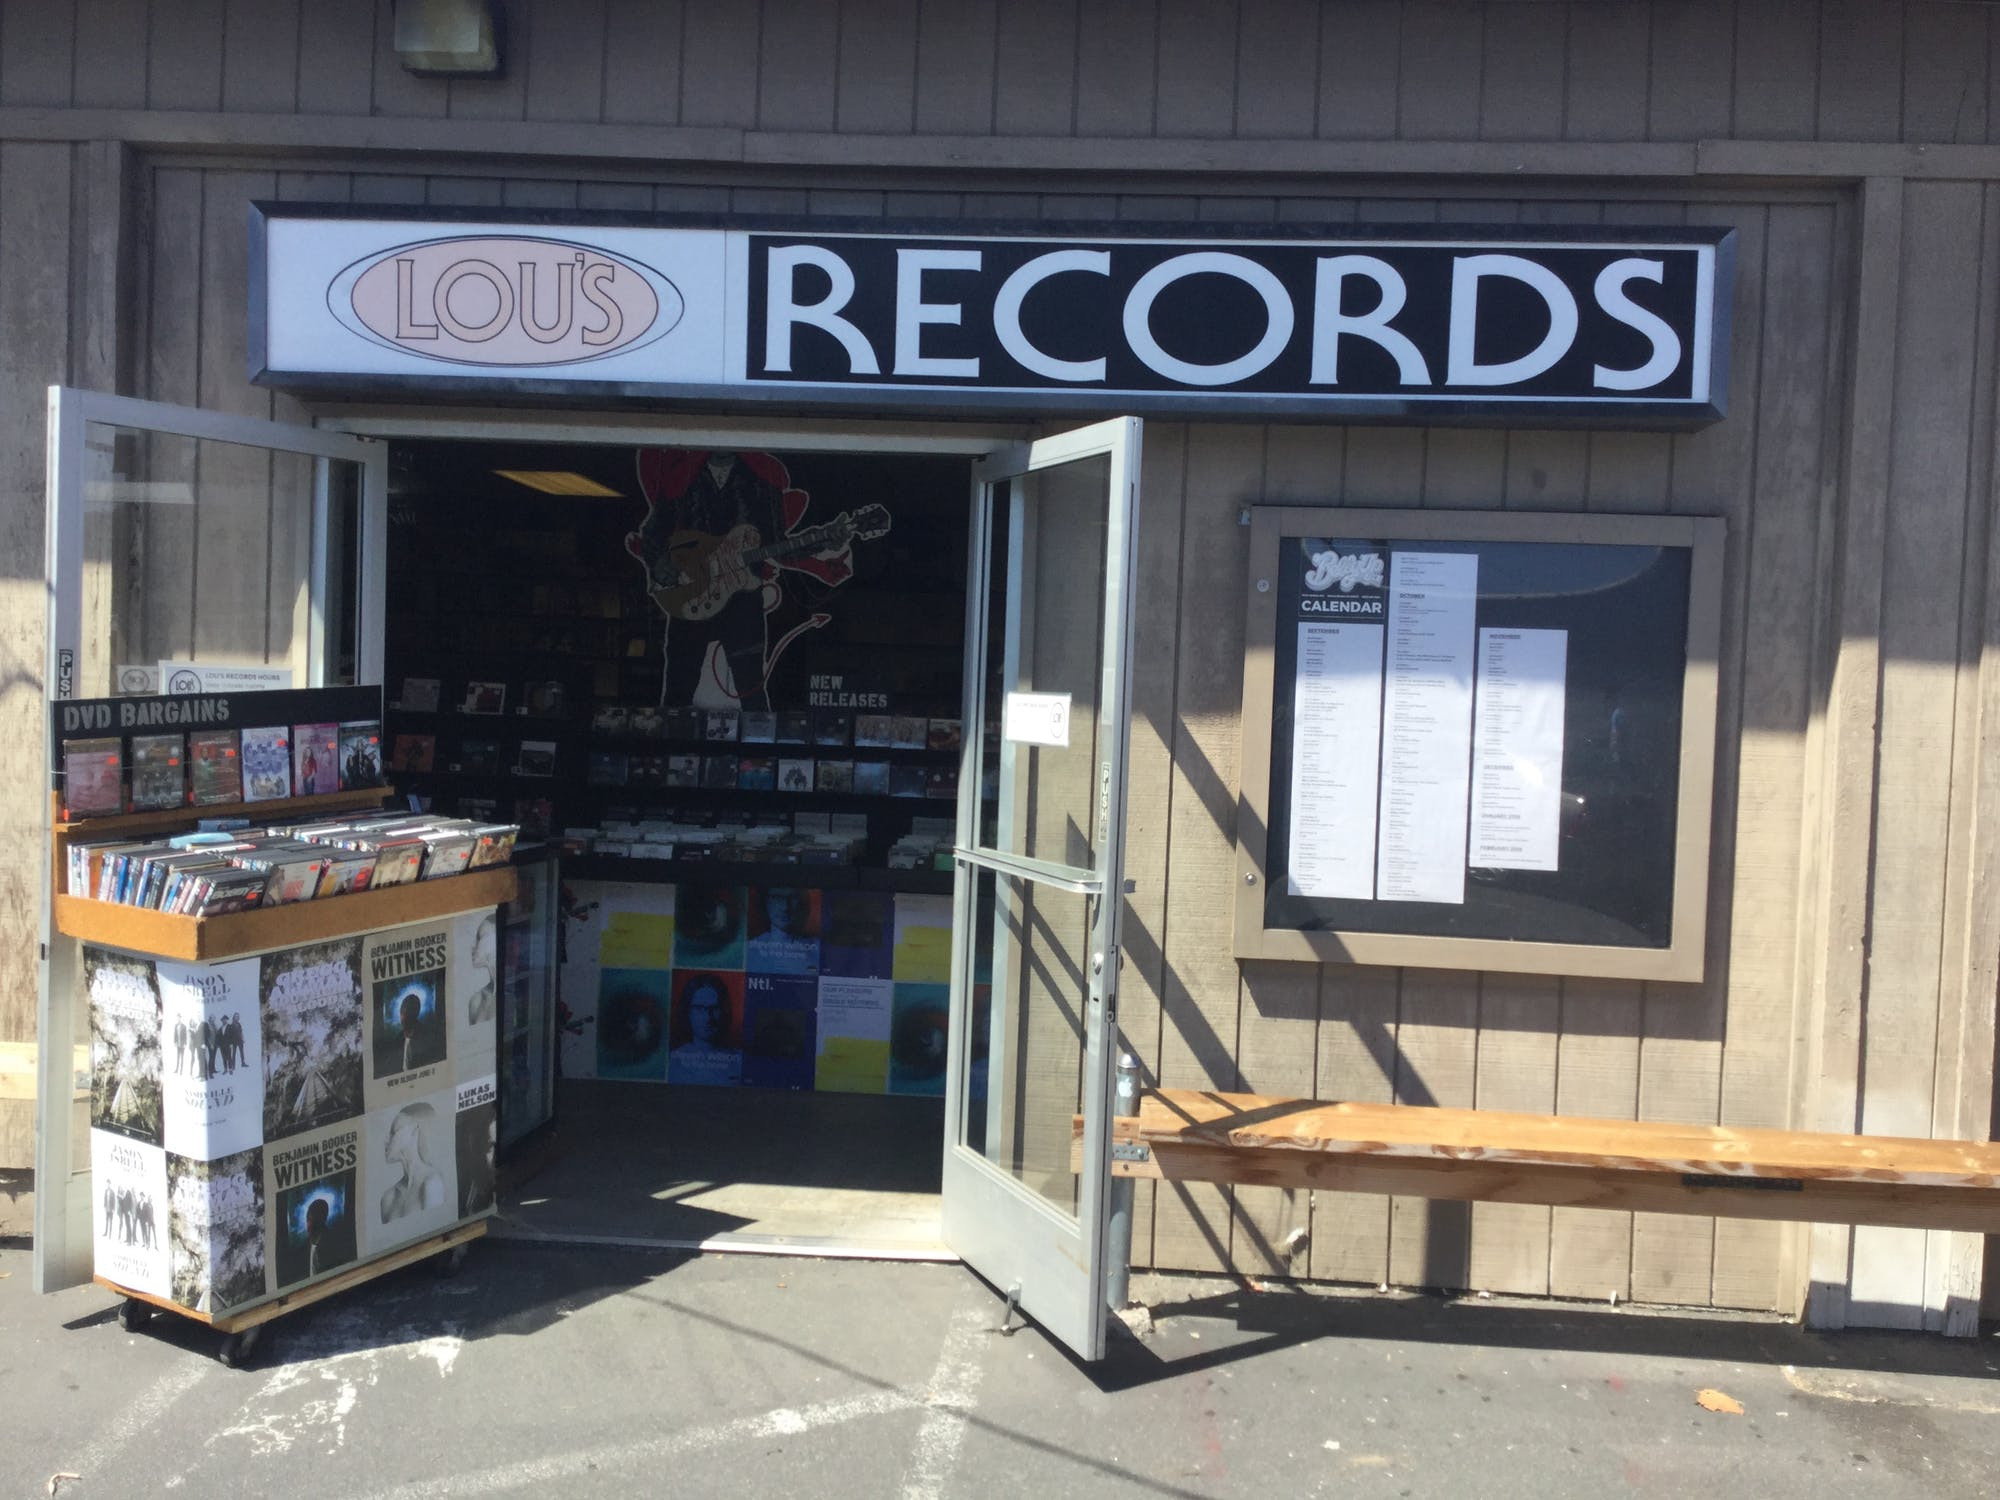 ab hardwood flooring and supplies chicago il 60618 of recordstores usa md at master a· ghostrong recordstores a· github pertaining to lous records